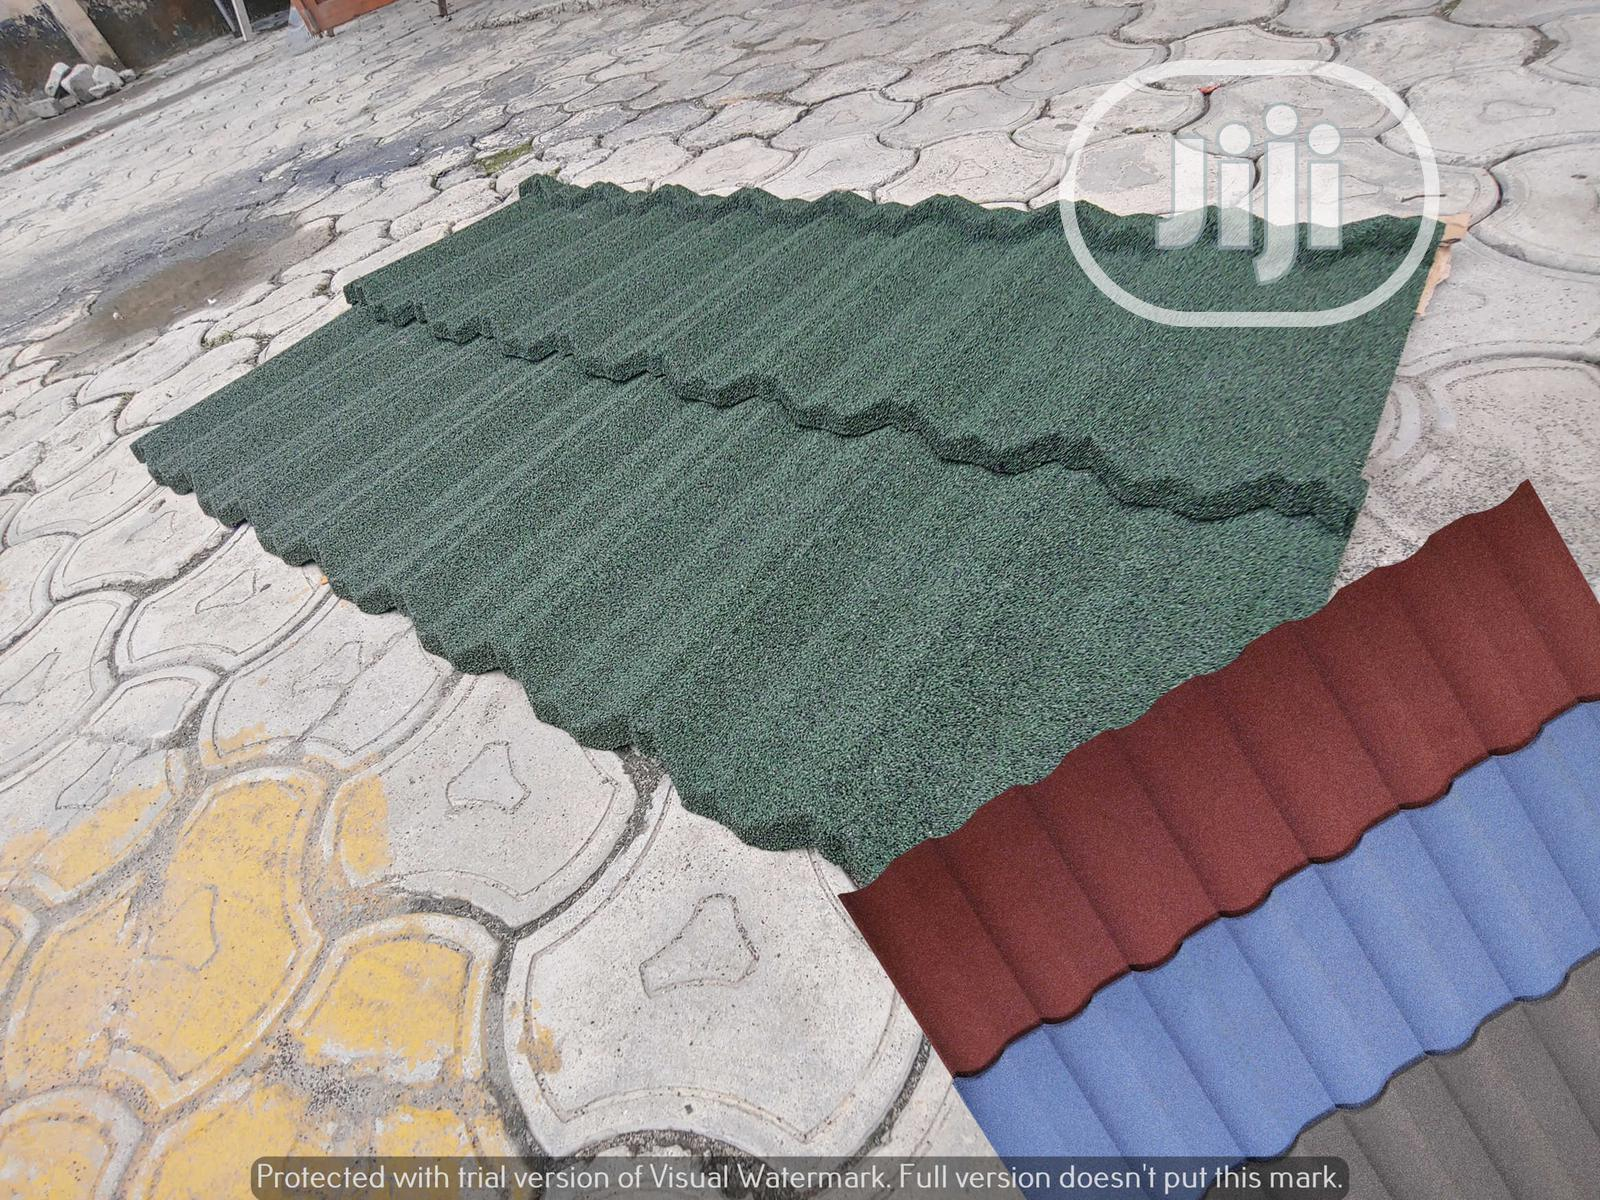 Quality Gerard Roof Tiles Classic In Ajah Building Materials Dnl Solutions Jiji Ng For Sale In Ajah Buy Building Materials From Dnl Solutions On Jiji Ng